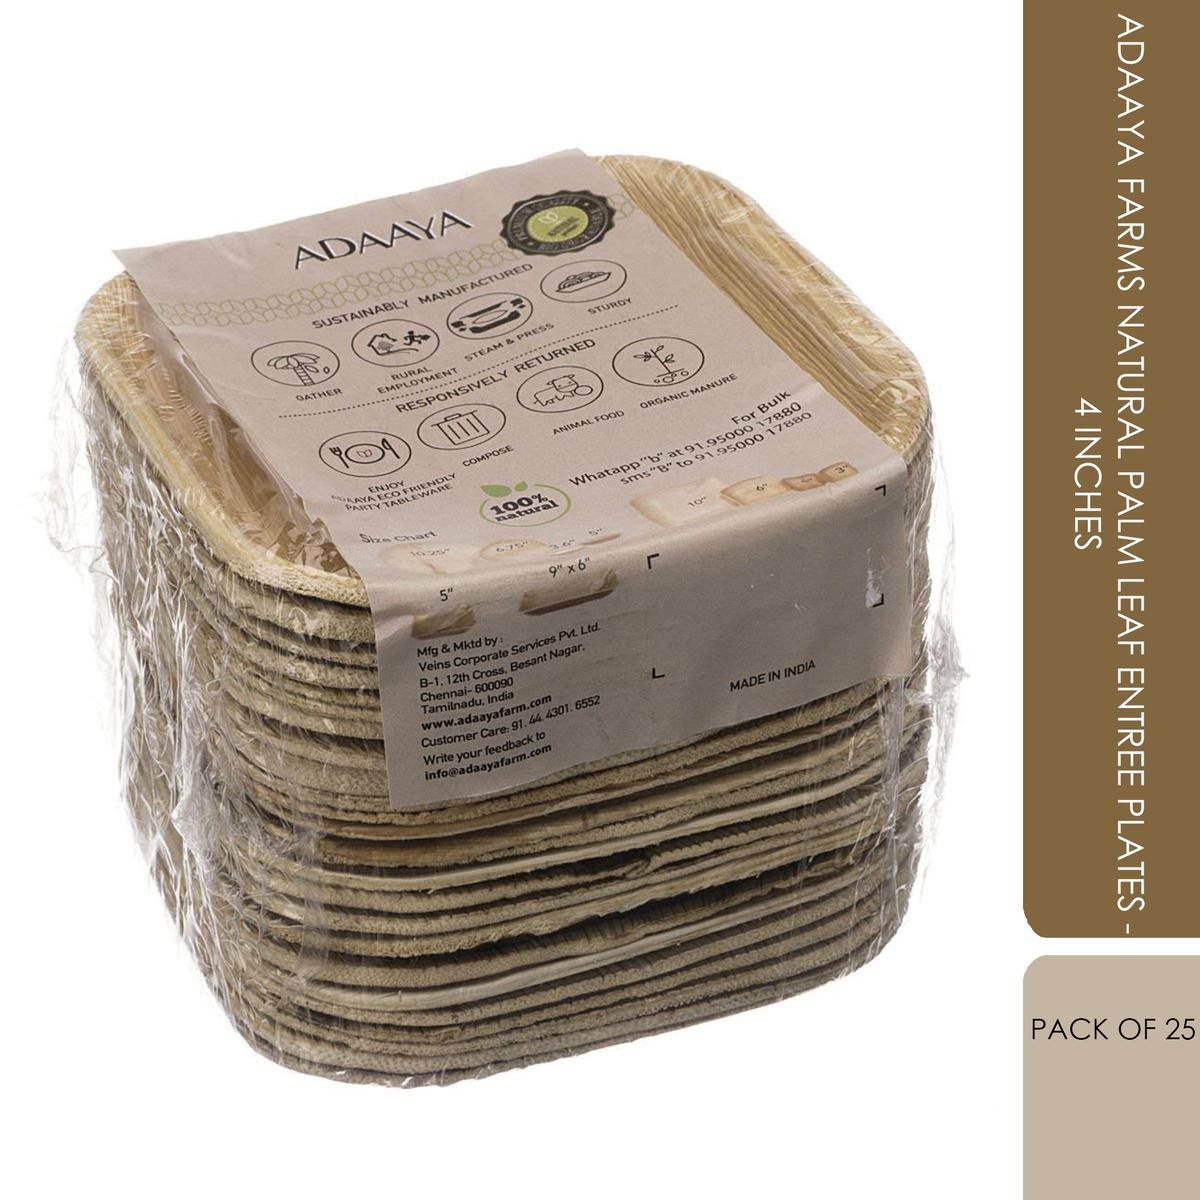 Adaaya Farms Natural Palm Leaf Entree Plates - 4 Inches (Pack of 25)